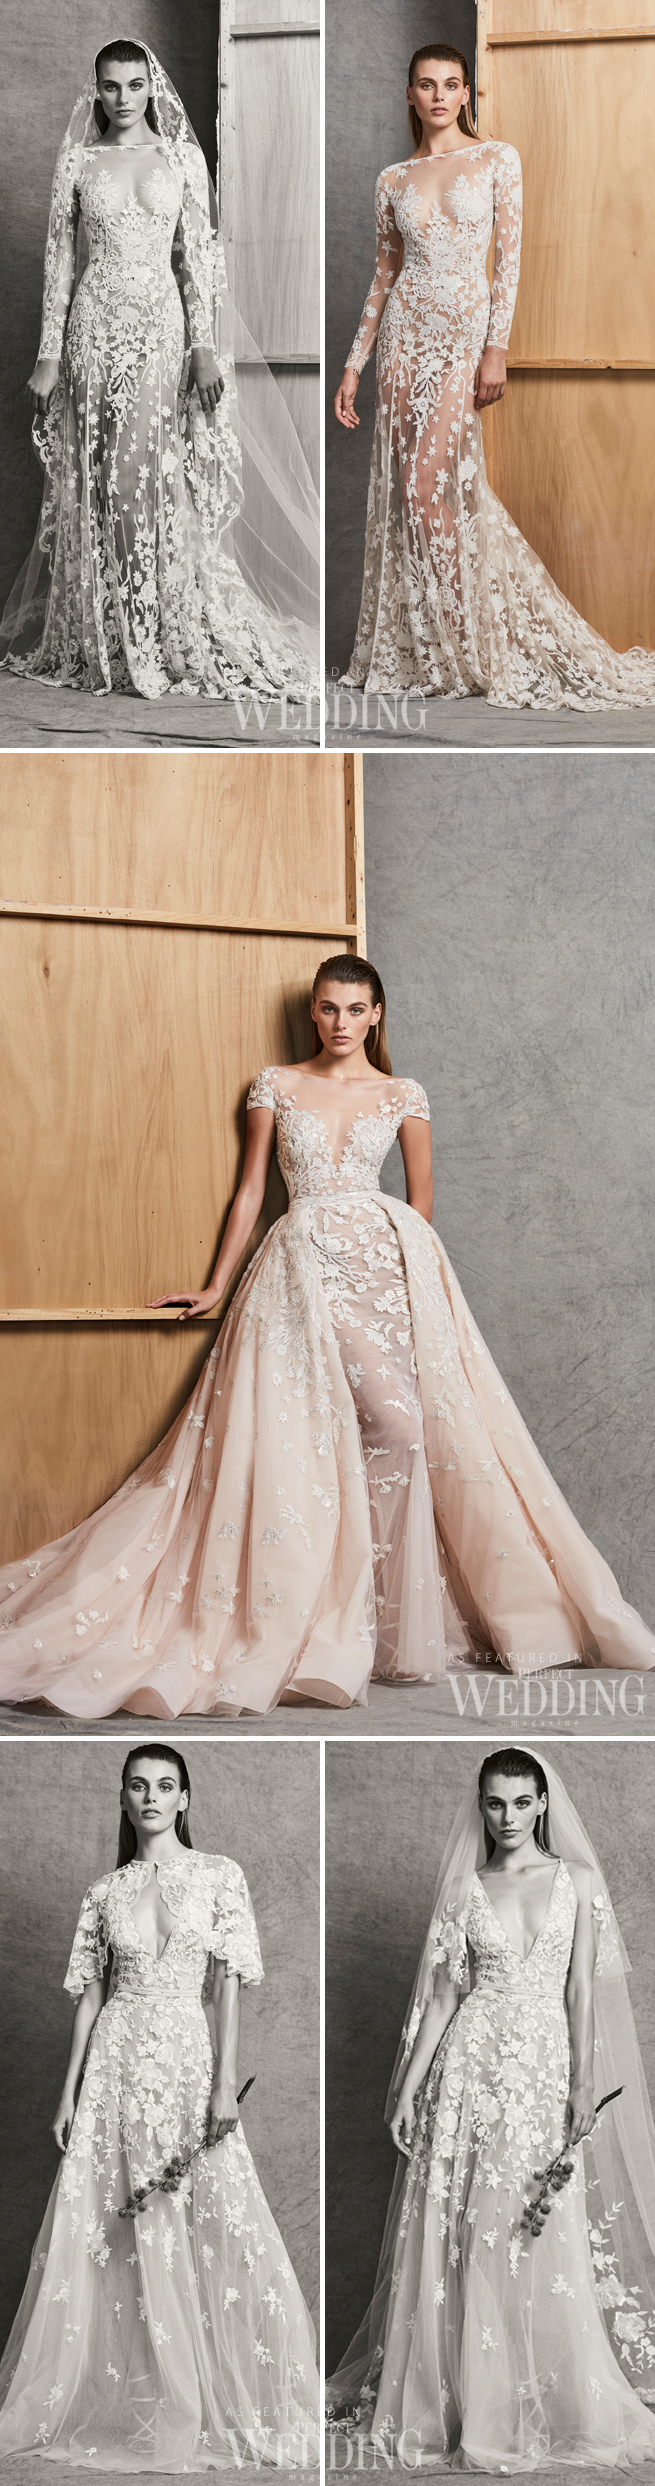 Zuhair Murad, Zuhair Murad Bridal 2018 Fall Collection, Zuhair Murad Bridal Gowns, Zuhair Murad Bride, Fall 2018 bridal trends, Perfect Wedding Magazine, Perfect Wedding Blog, Bridal Trends, Pink Wedding Gowns, Blush Wedding Gowns